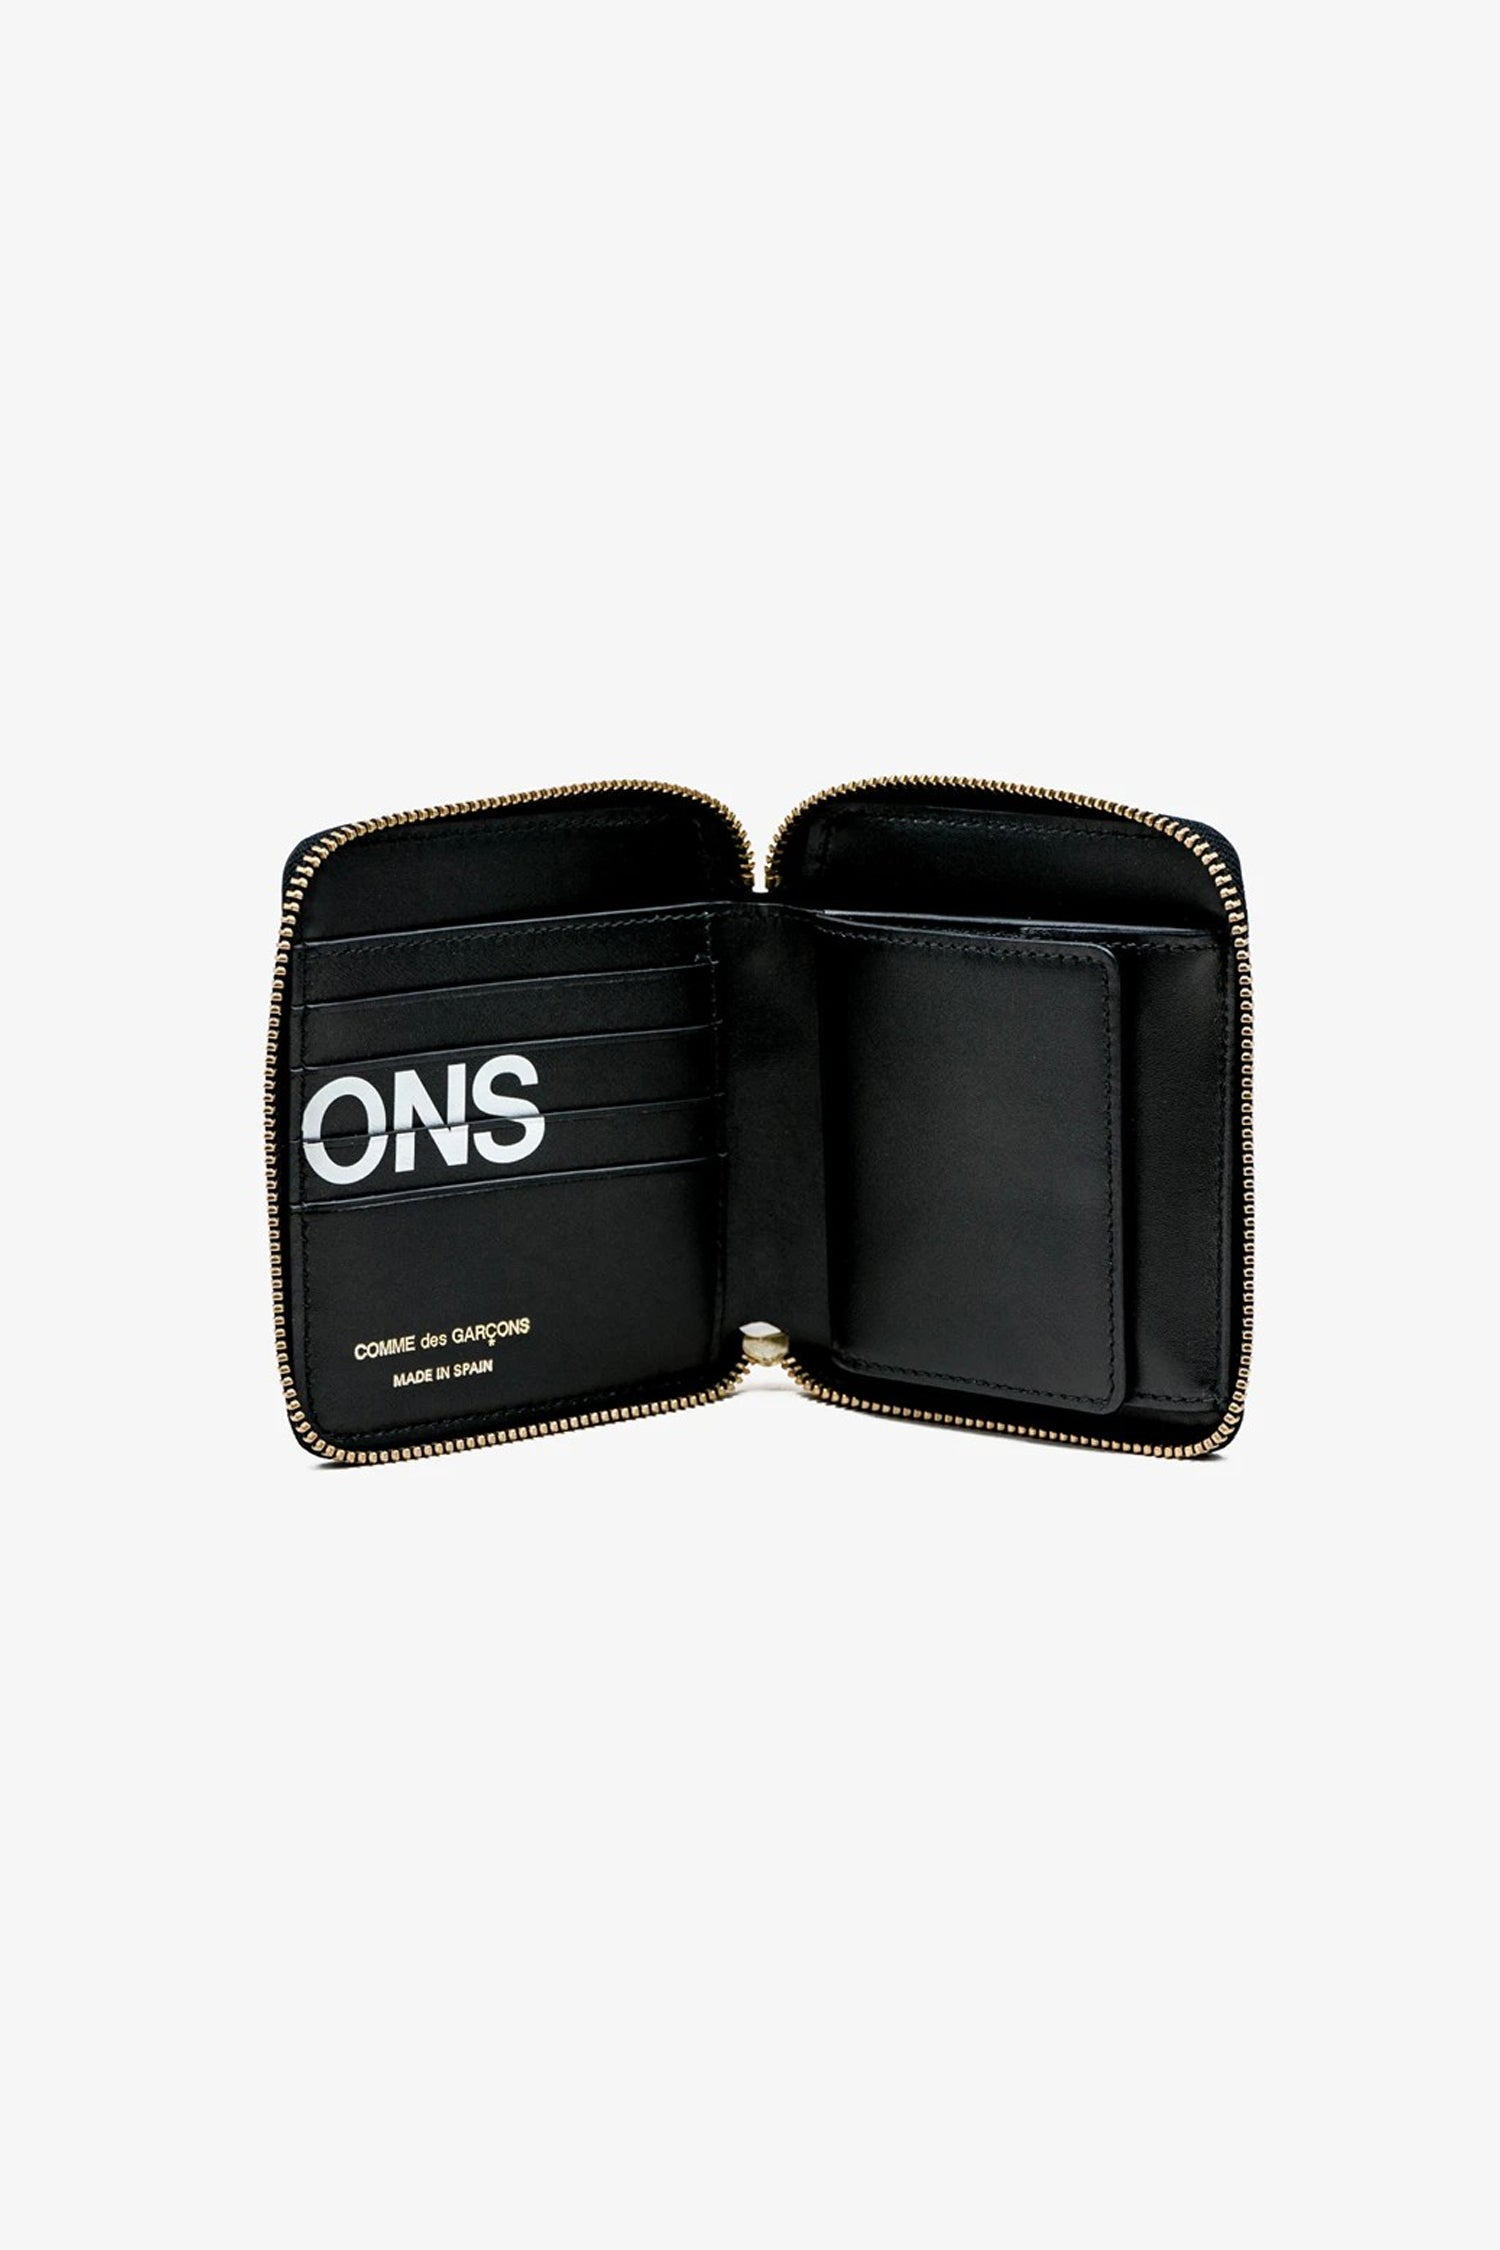 FRAME - COMME DES GARCONS WALLETS Huge Logo Wallet